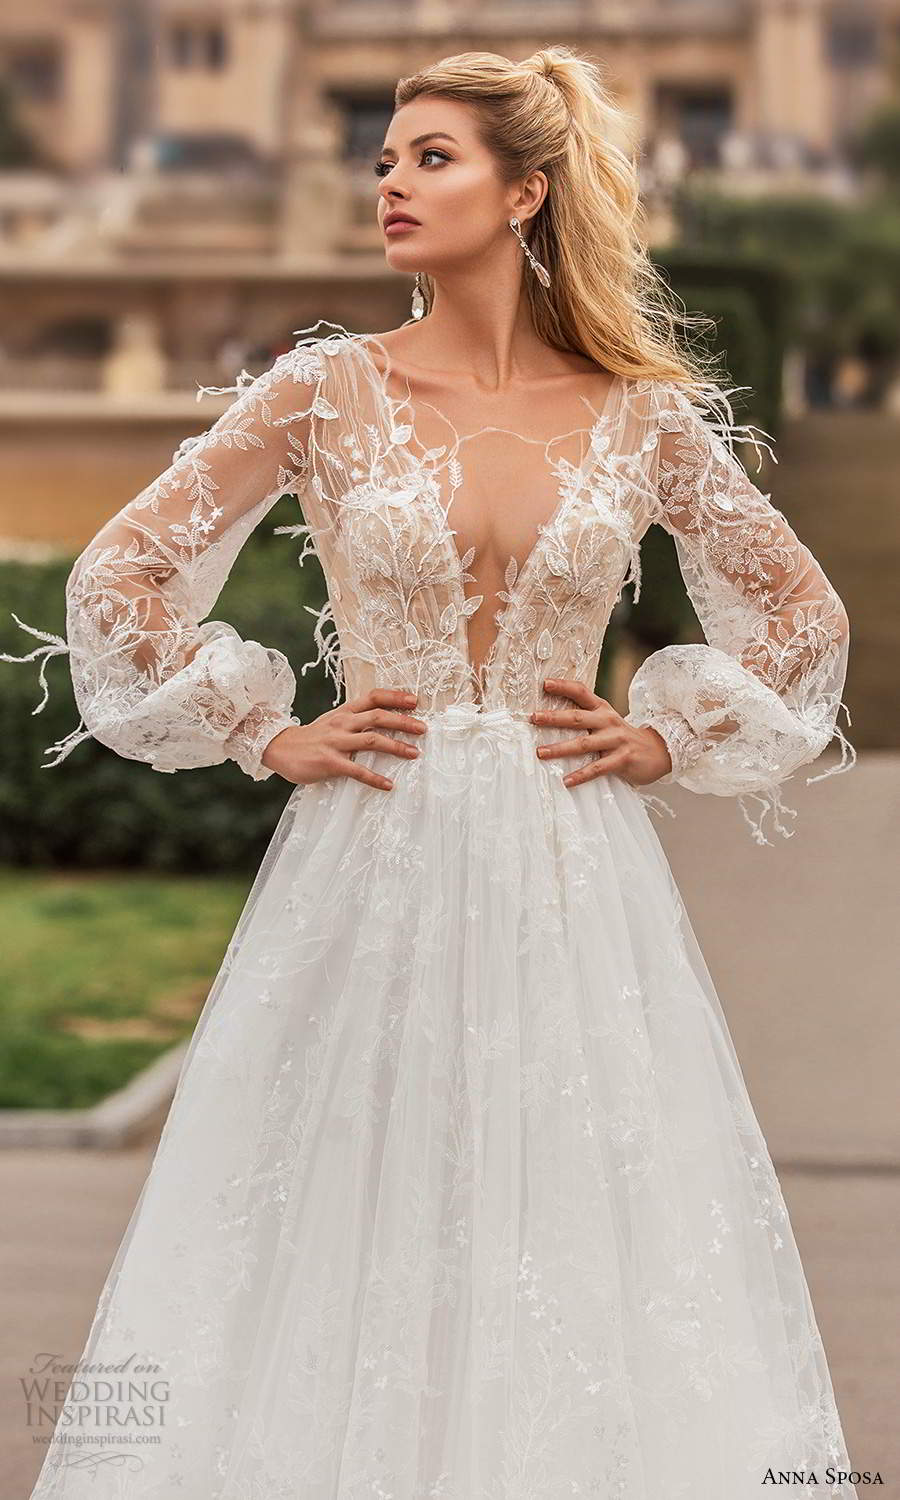 anna sposa 2021 bridal illusion bishop sleeves plunging v neckline fully embellished feather lace a line ball gown wedding dress chapel train (11) zv